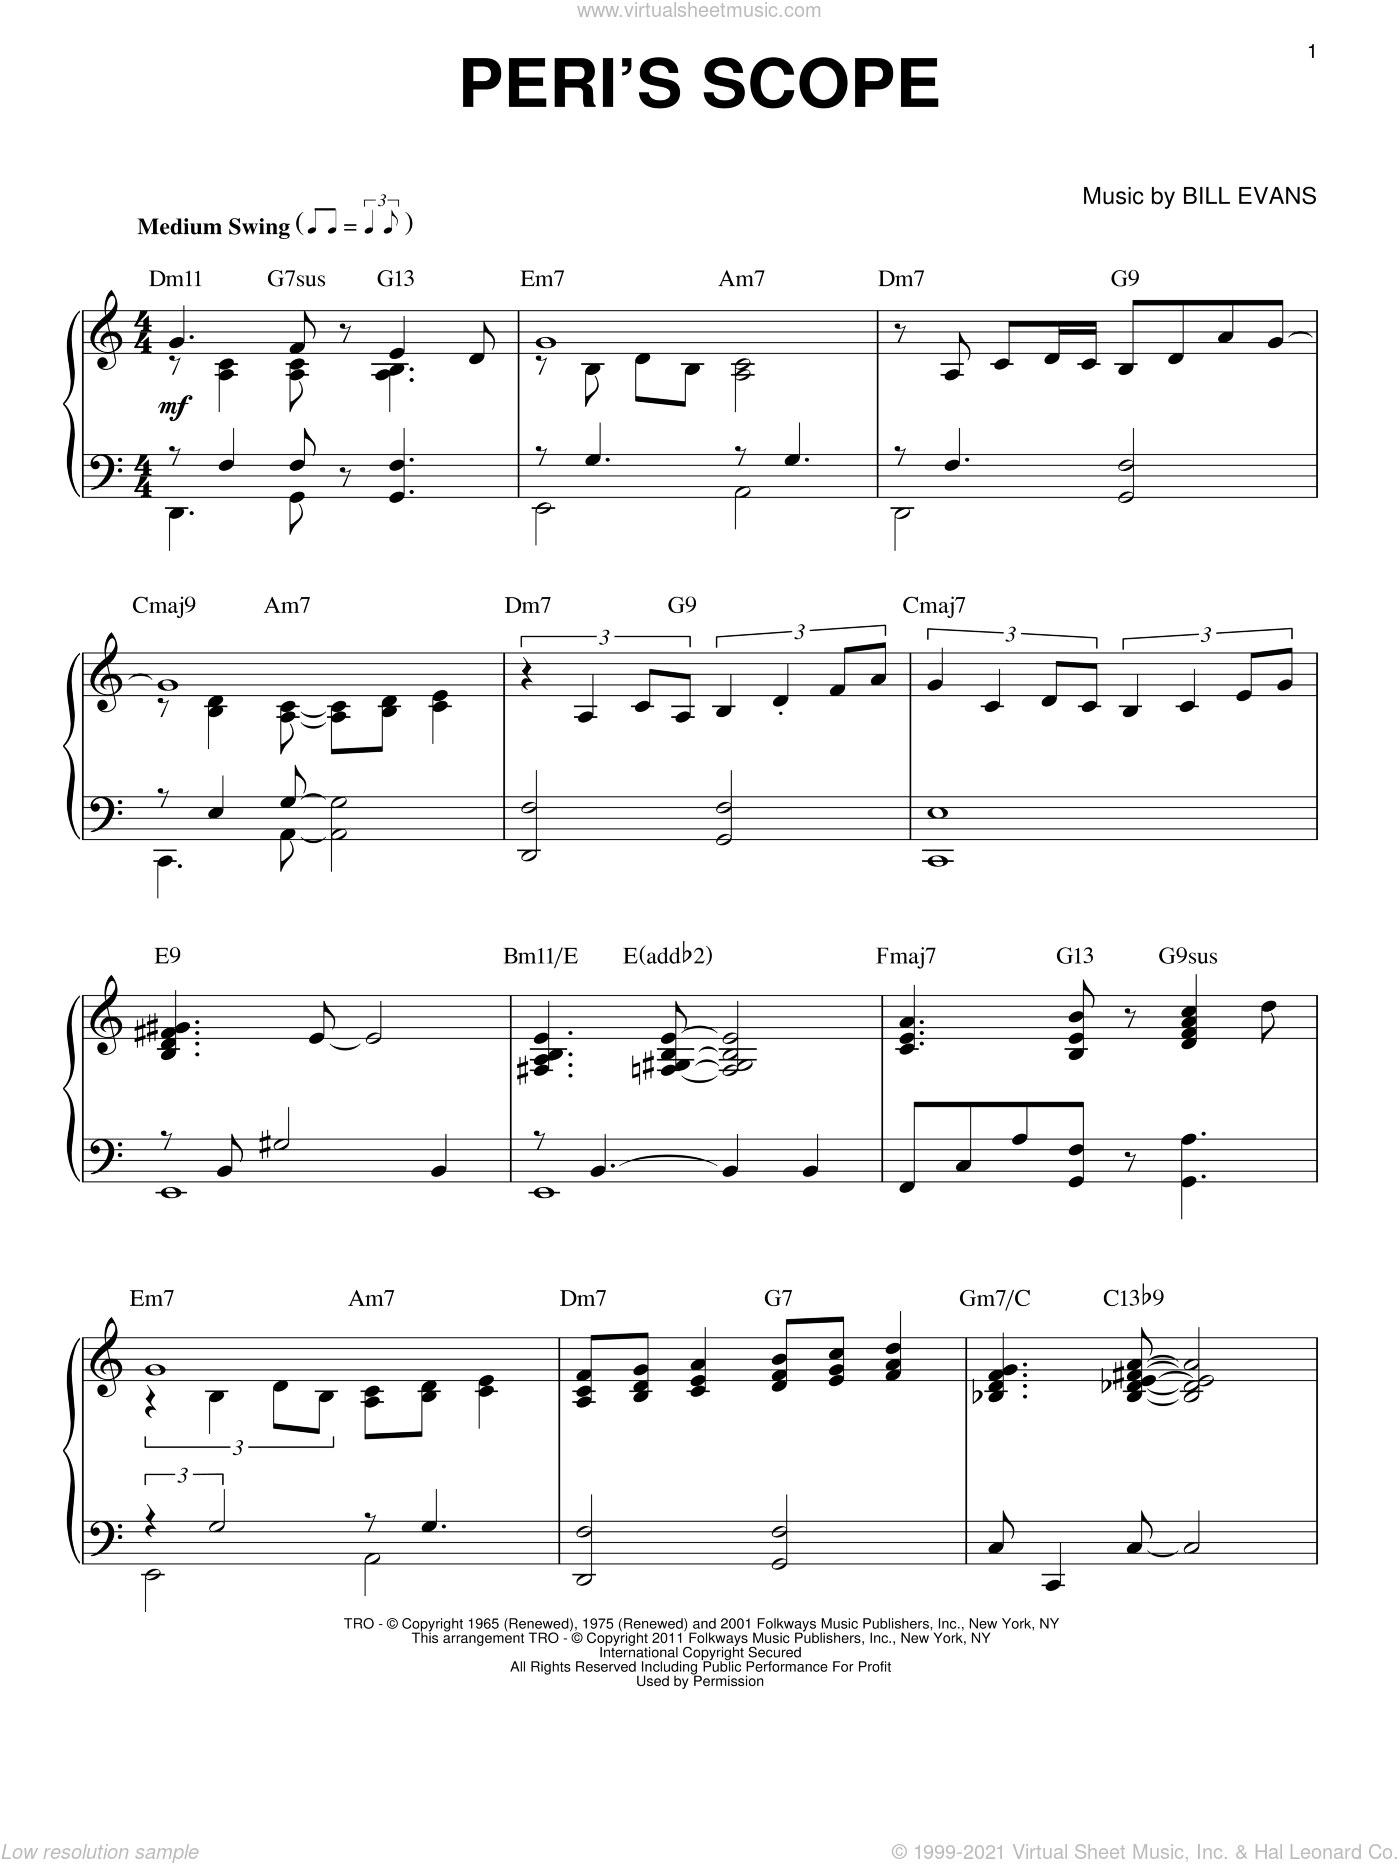 Peri's Scope sheet music for piano solo by Bill Evans, intermediate skill level